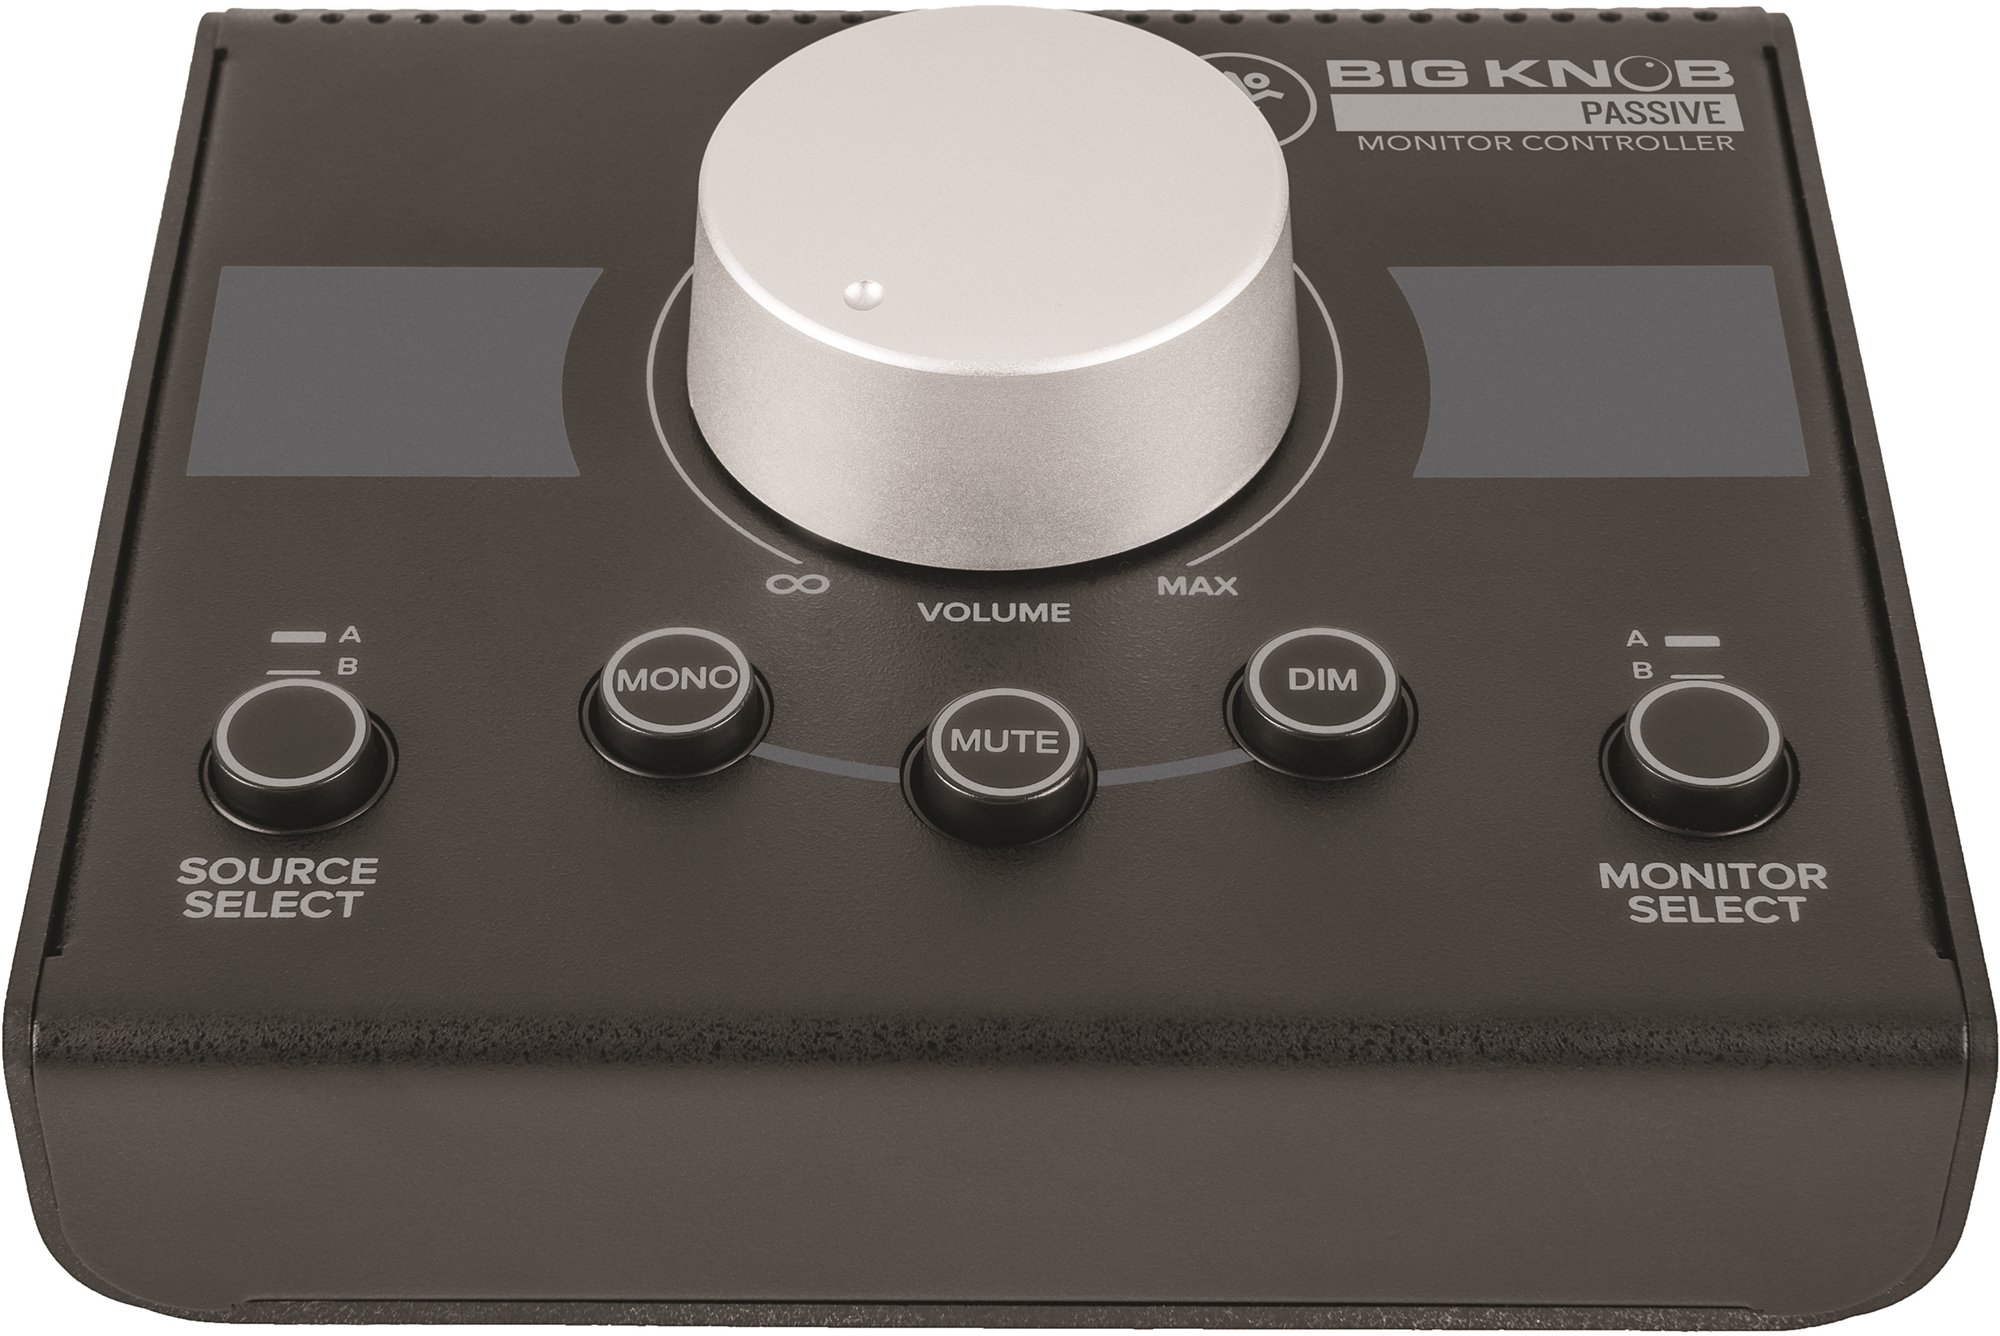 Mackie BIG KNOB PASSIVE Monitor Controller by Mackie